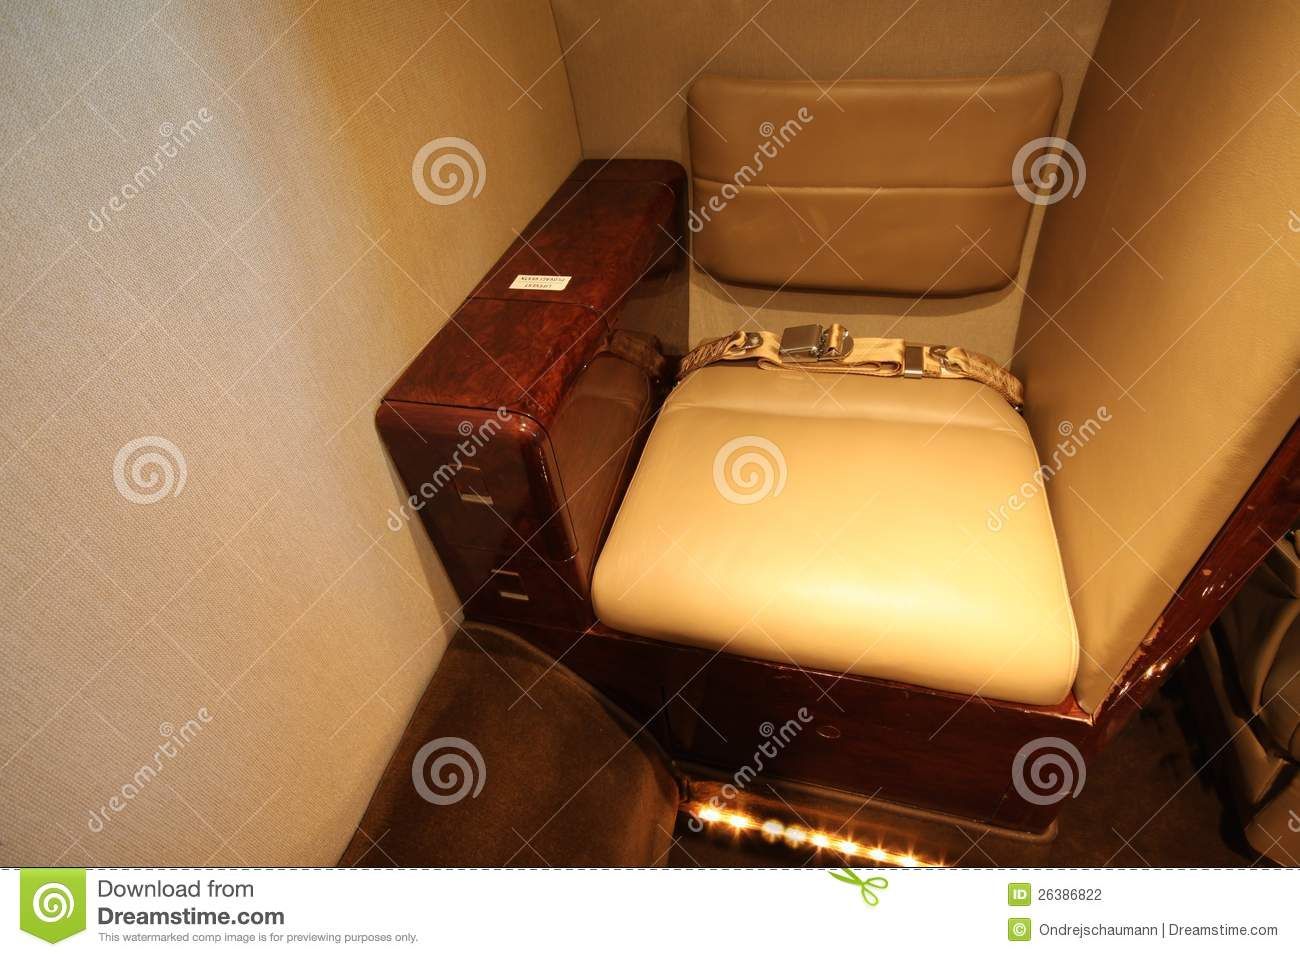 Stock Photography: Small private jet toilet seat